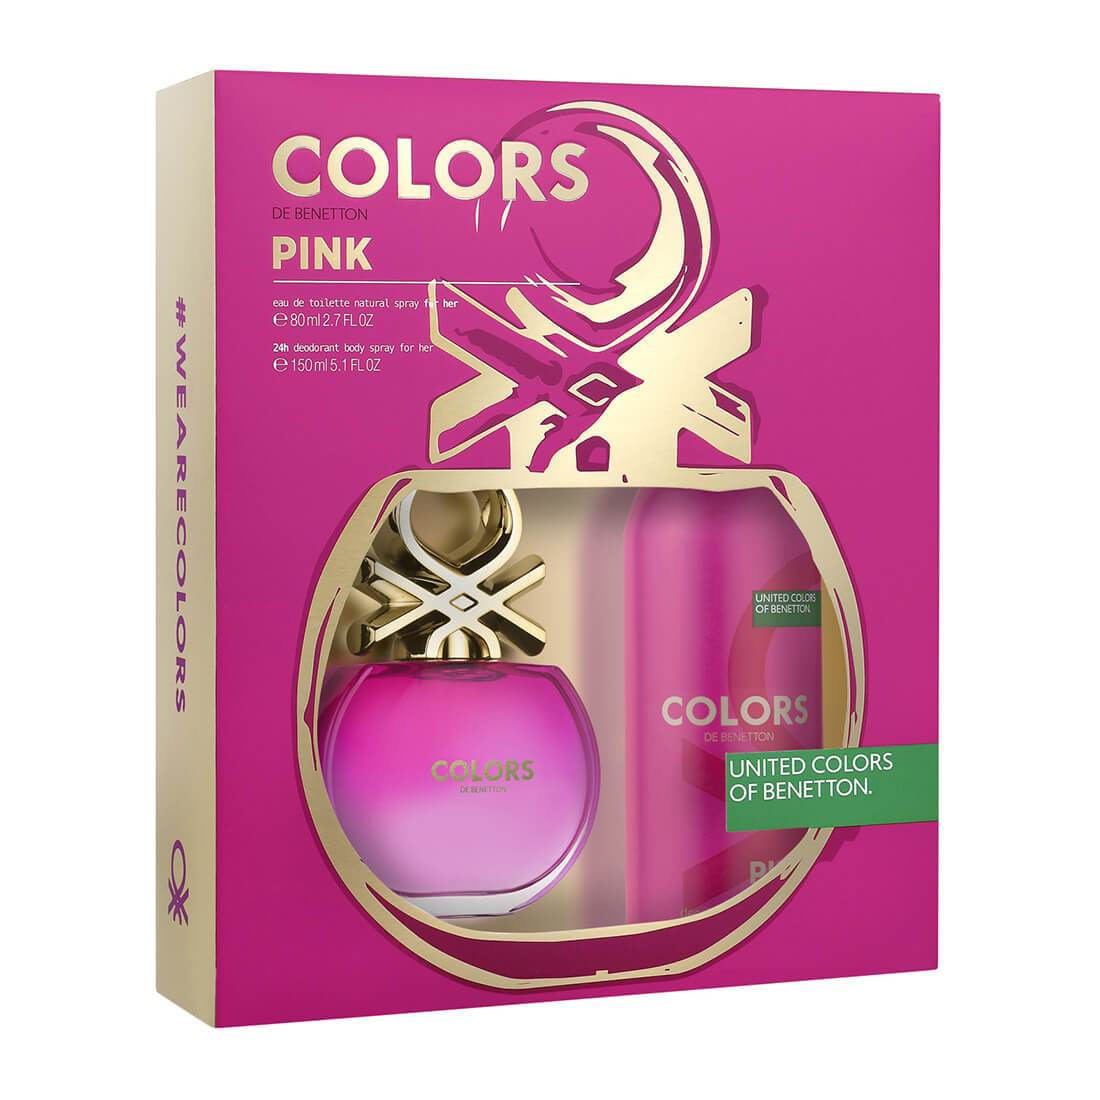 United Colors of Benetton Colors Pink Fragrance Gift Set Perfume for Women 80ml + Deodorant Spray 150ml